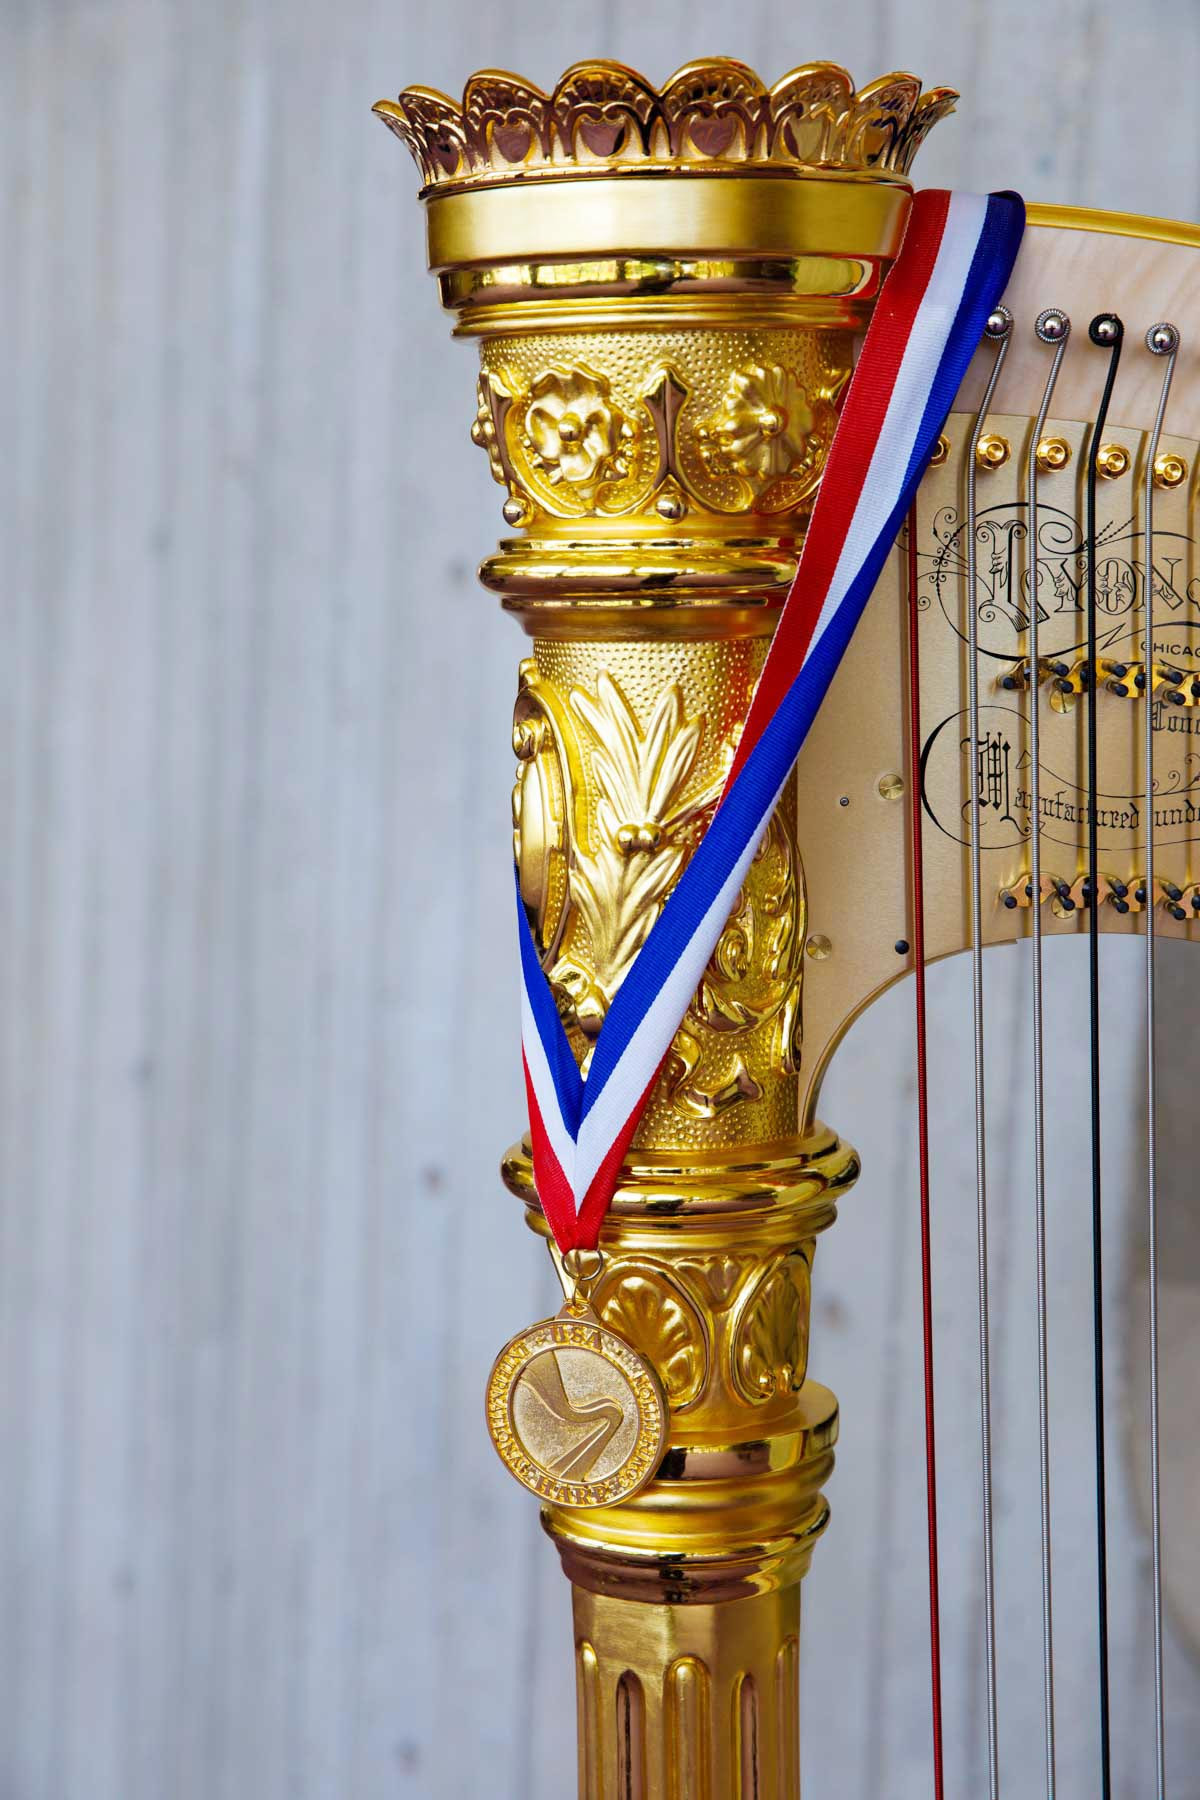 The gold medal is pictured with the Lyon and Healy Concert Grand Harp during the 11th USA International Harp Competition at Indiana University in Bloomington, Indiana on Saturday, July 13, 2019. (Photo by James Brosher)